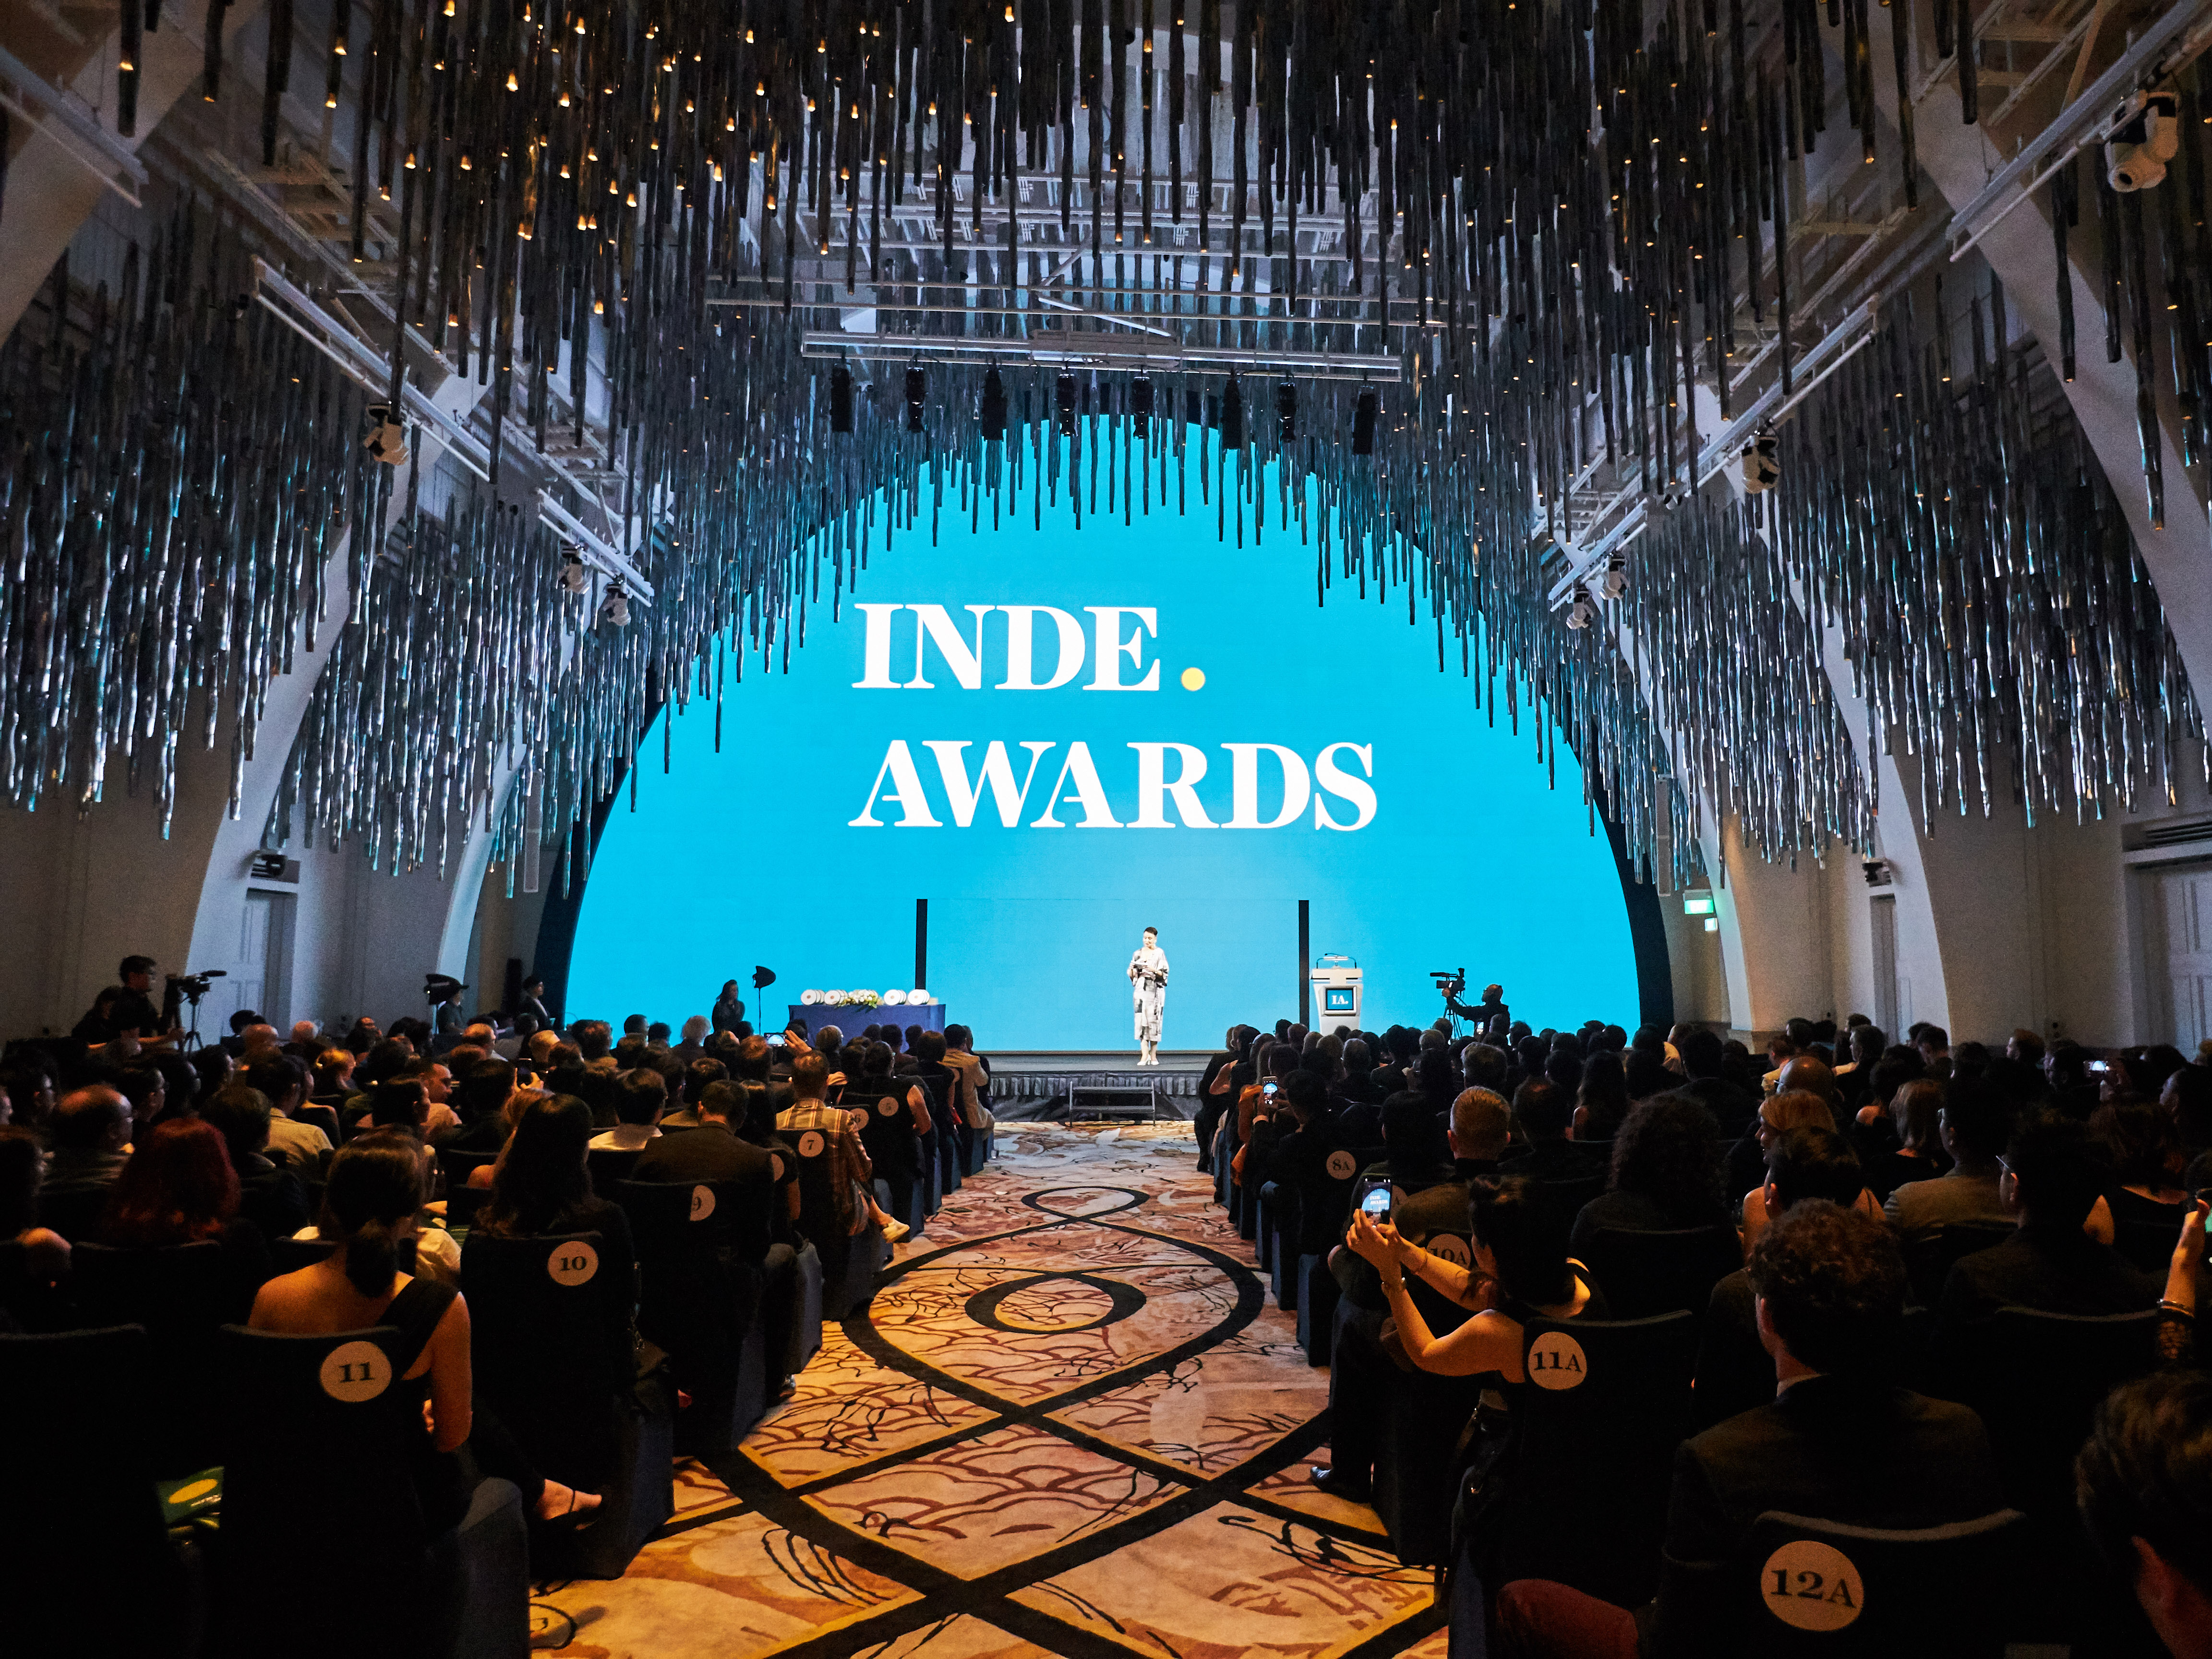 Inde Awards 2019 Entries Now Open Architecture Amp Design